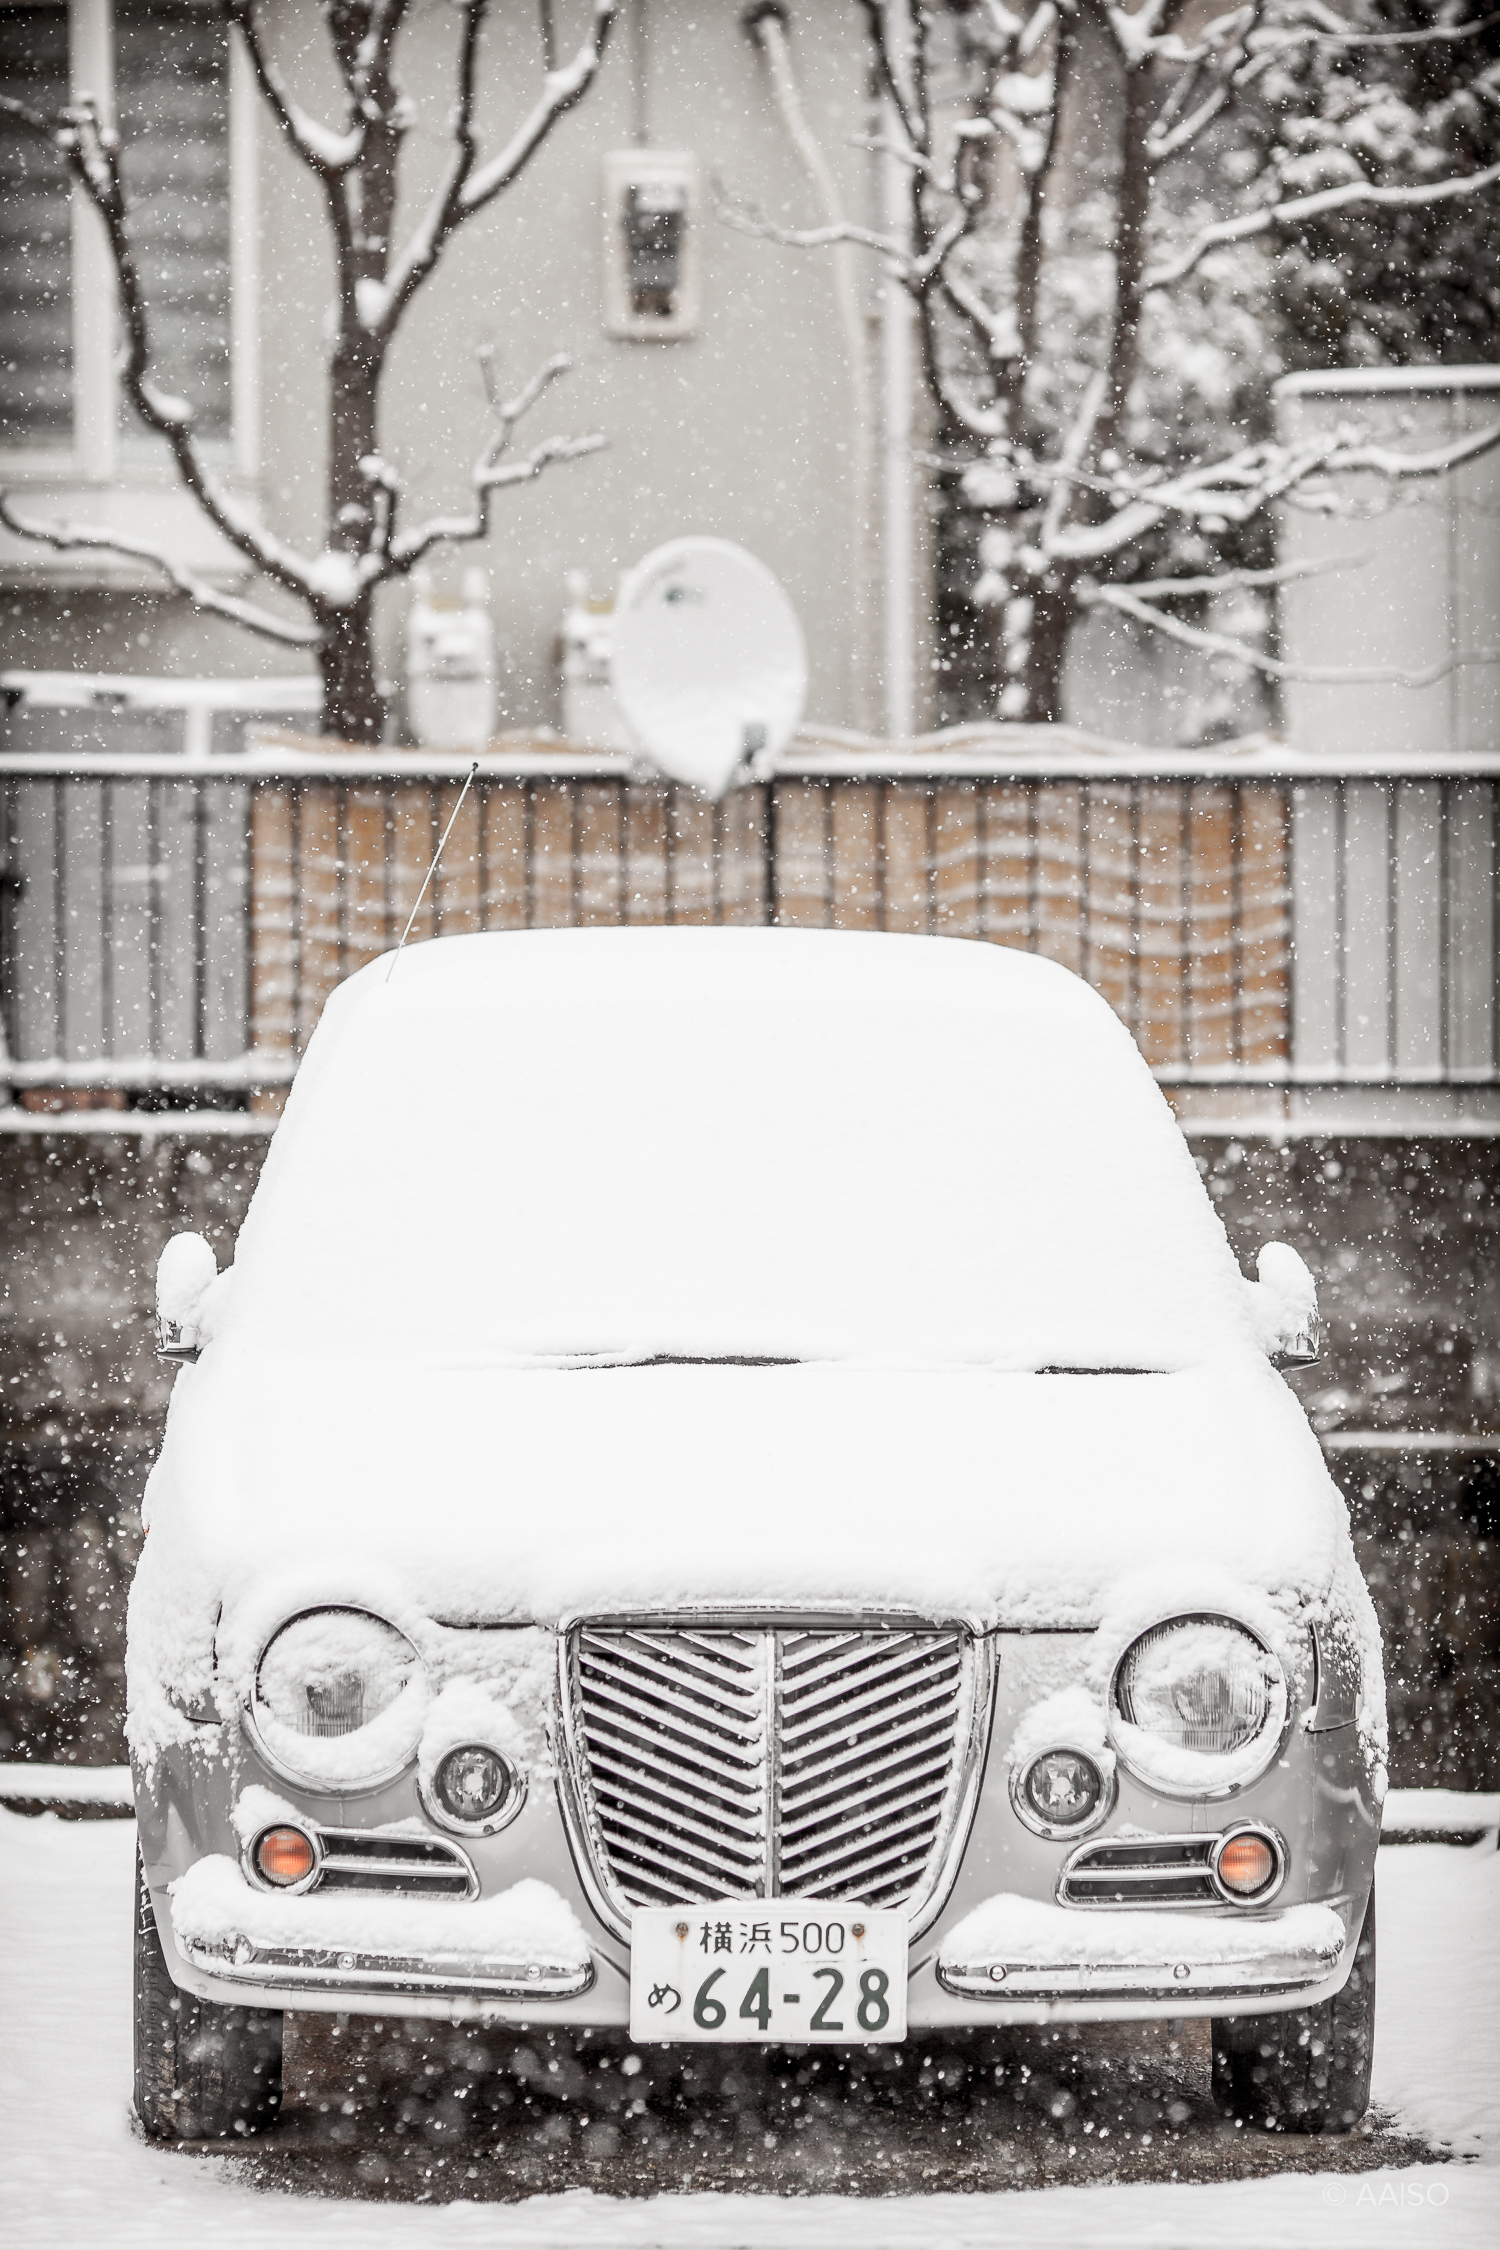 Snow-covered japanese car